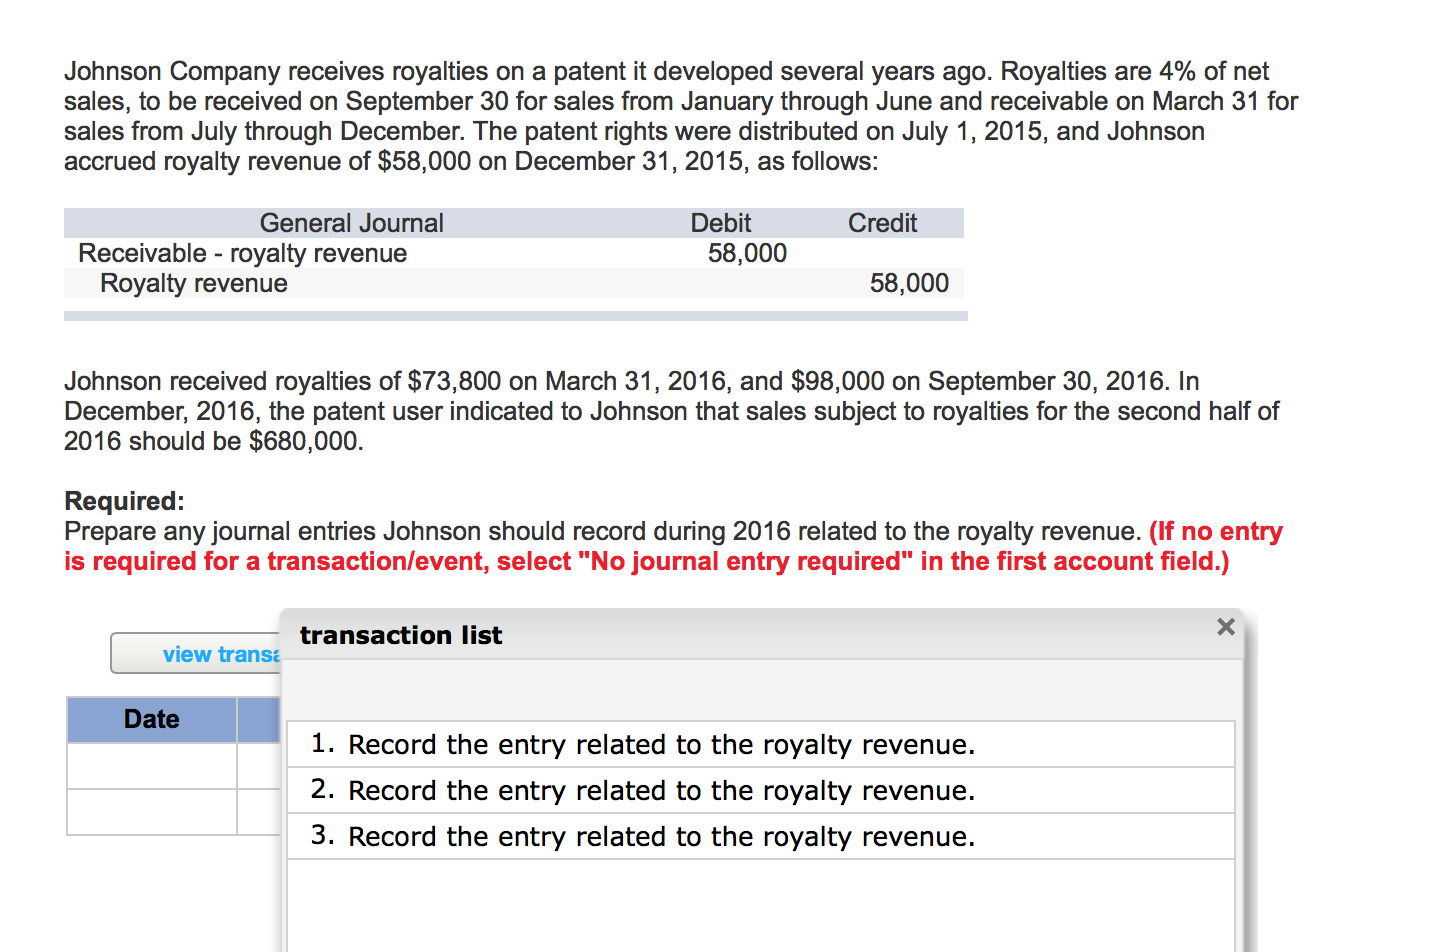 patent royalties Solved: Johnson Company Receives Royalties On A Patent It ...